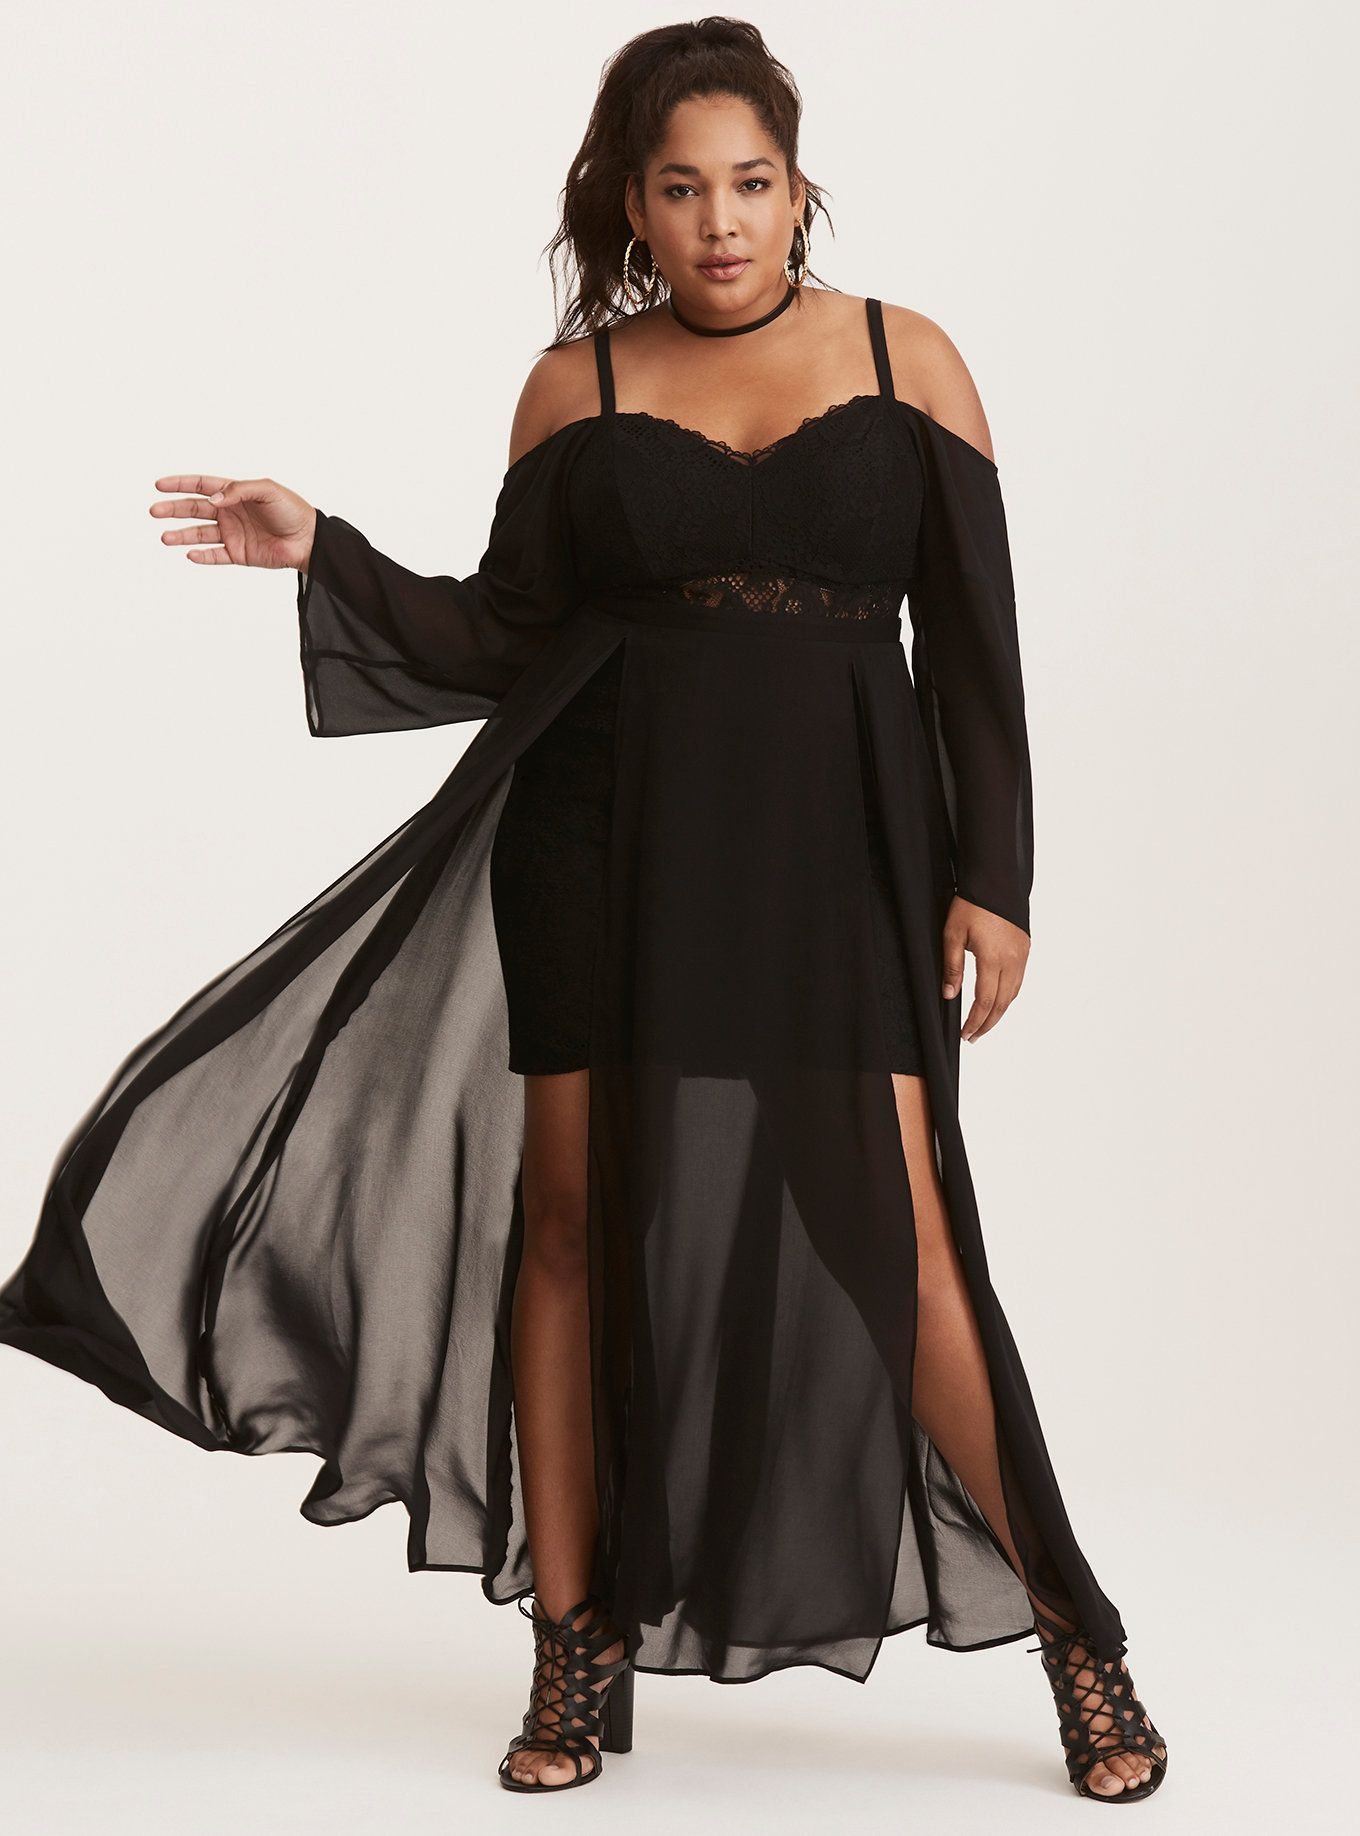 Maxi dress with lace bustier